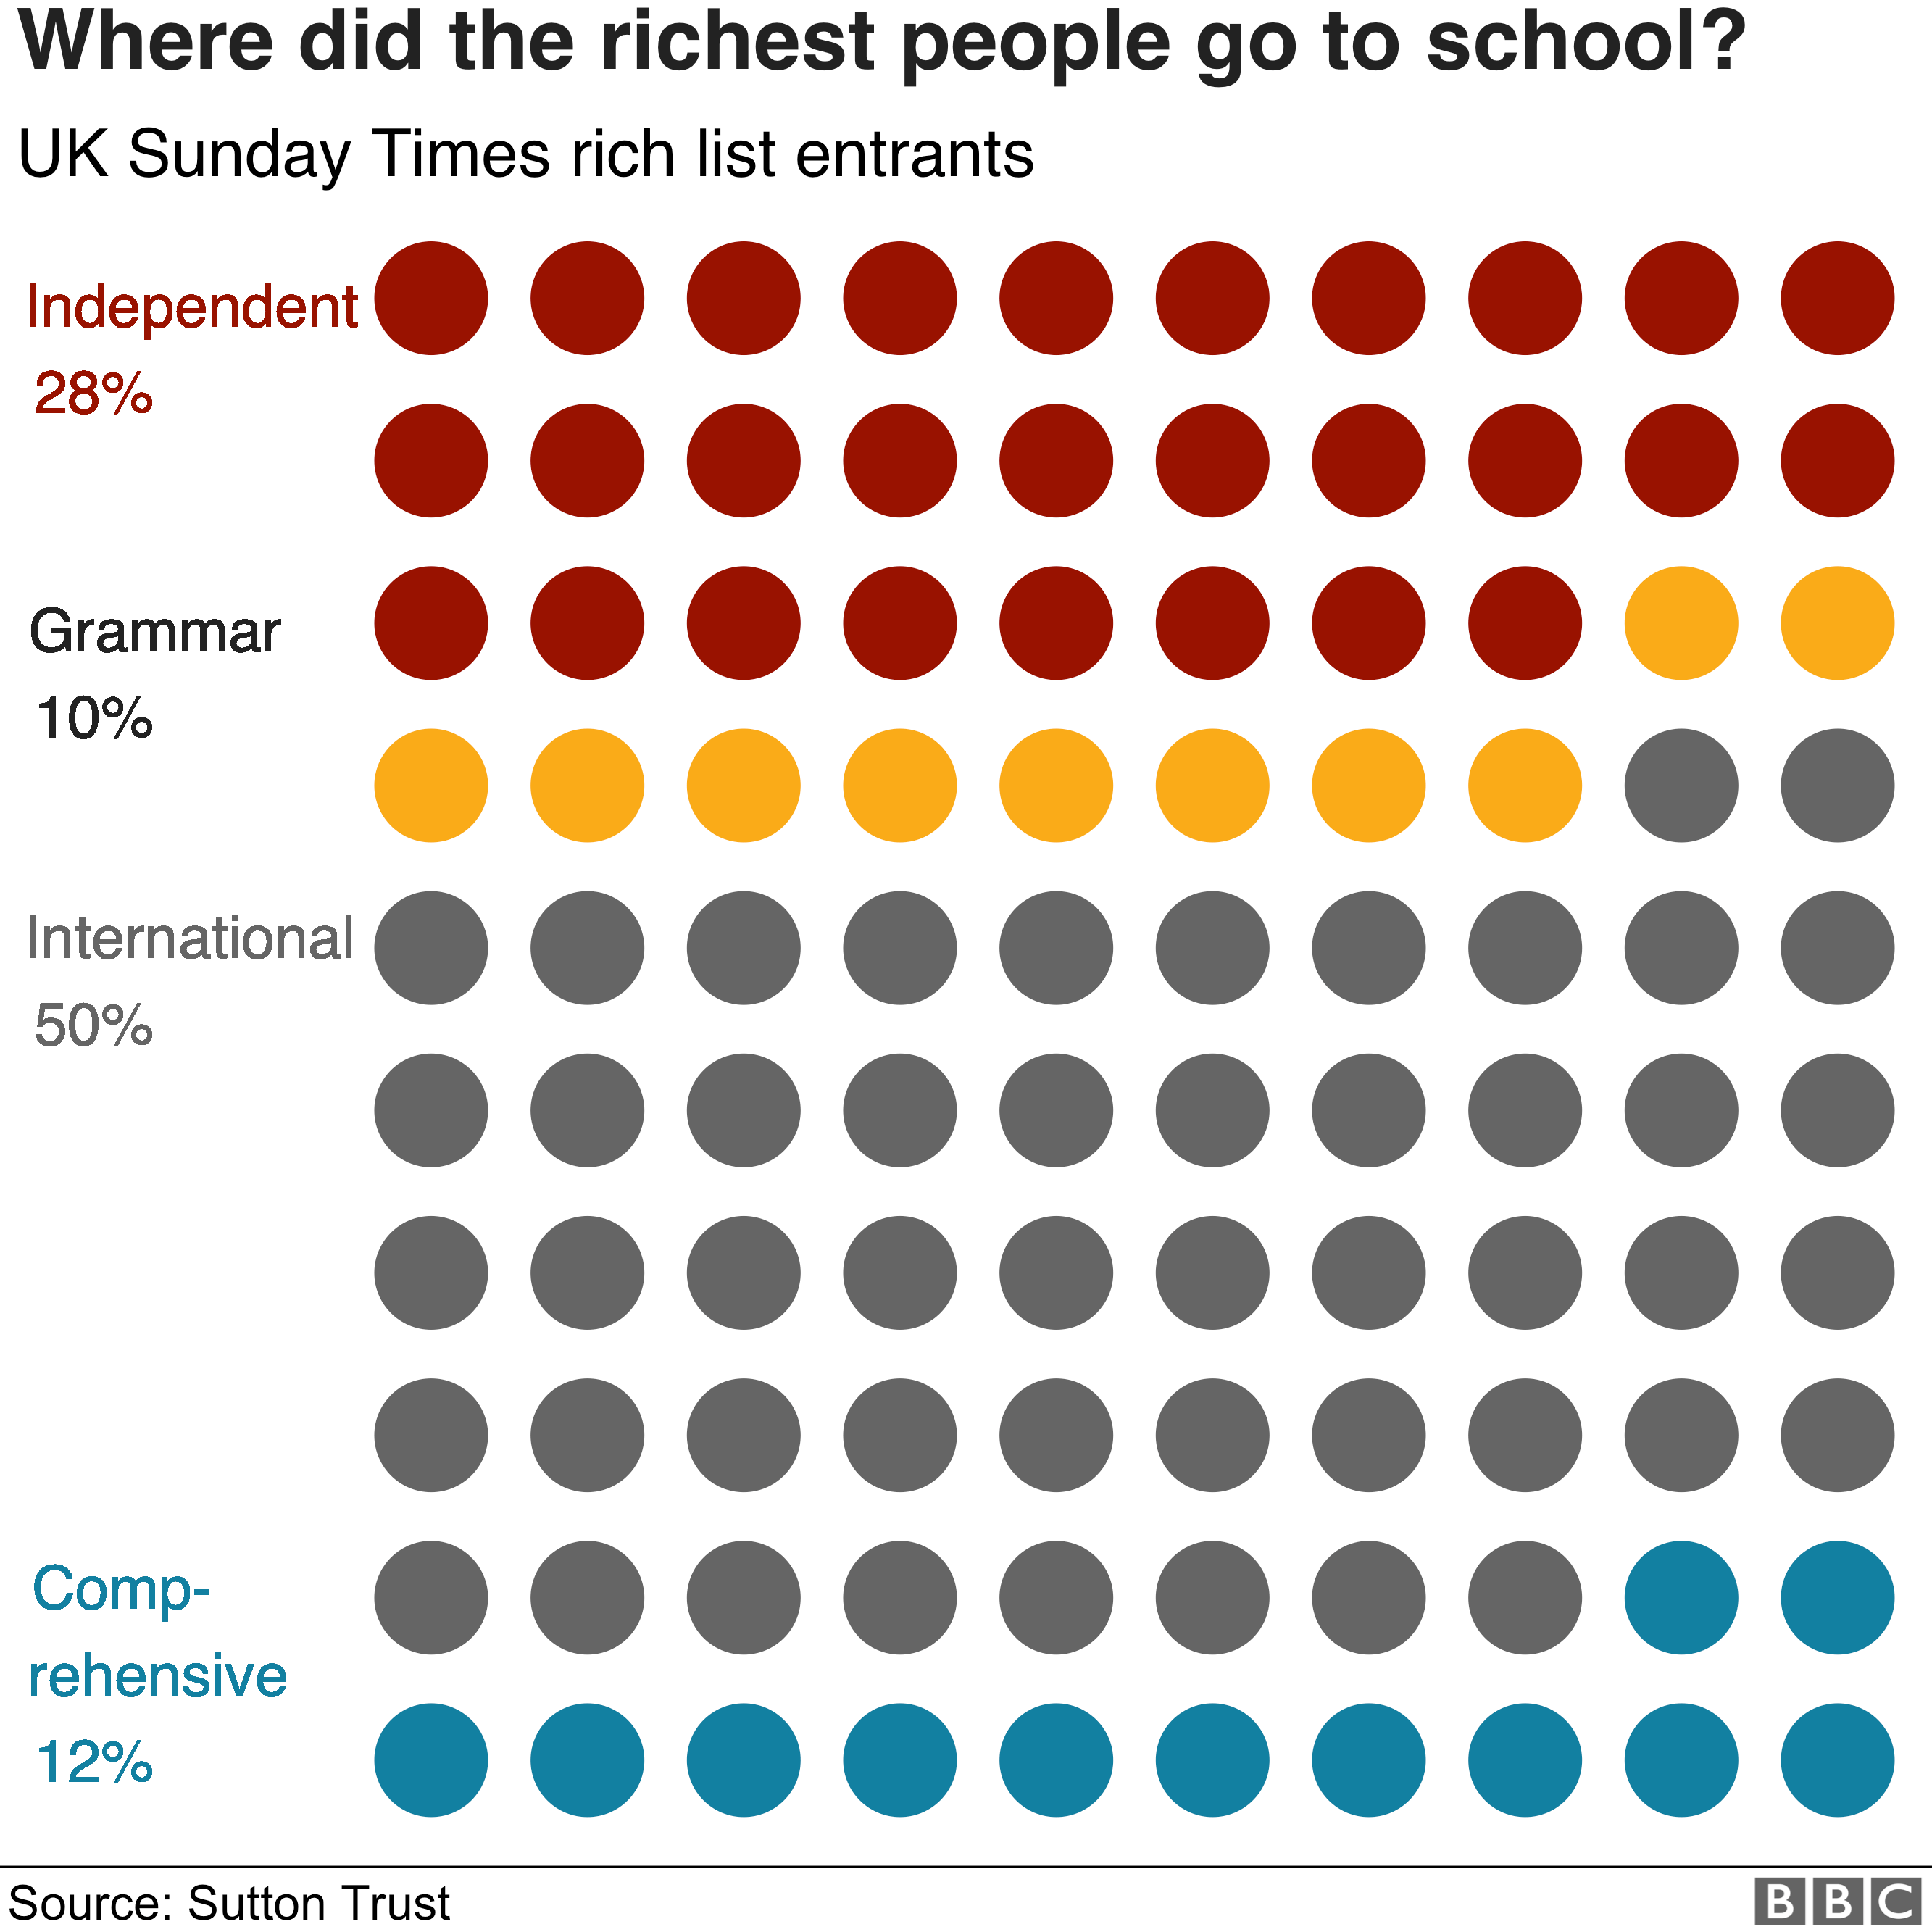 Chart on where the richest people went to school